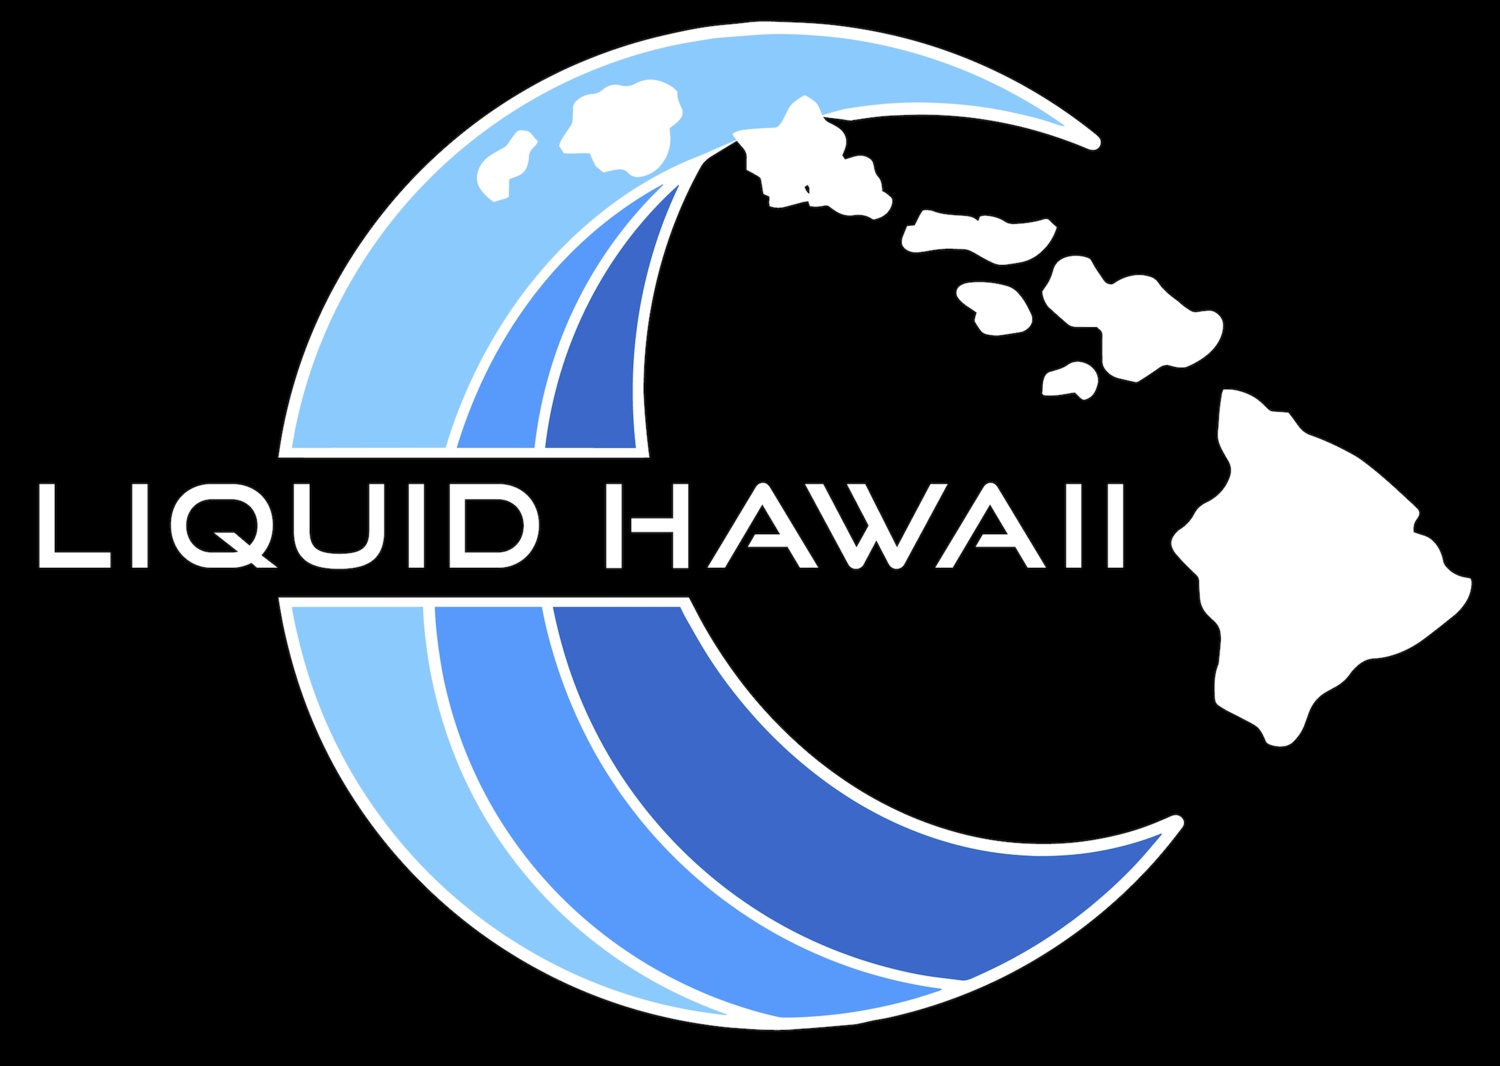 Liquid Hawaii